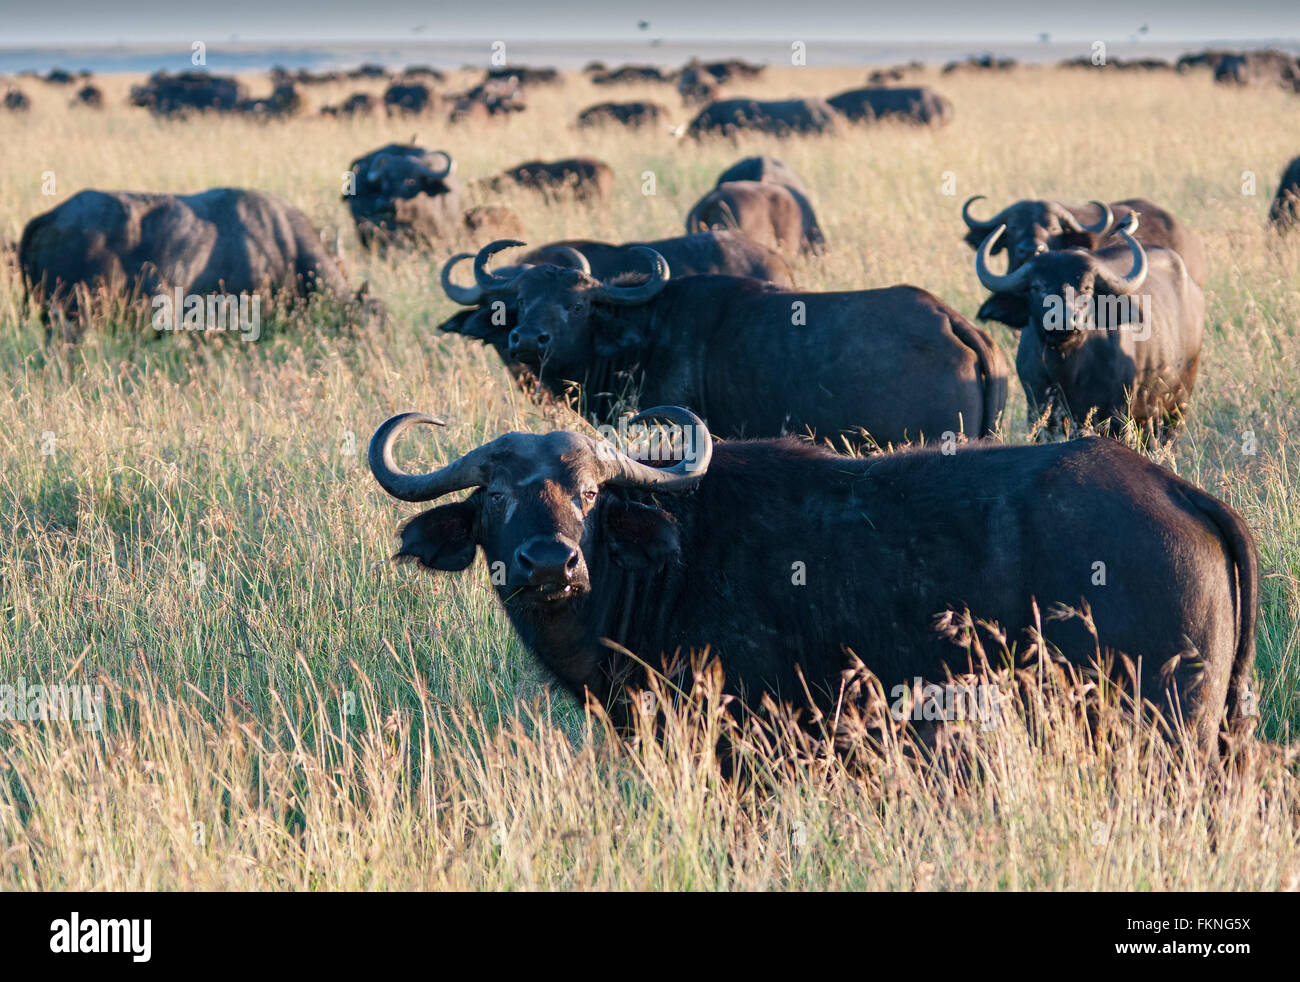 Herd of Cape Buffalo (Syncerus caffer), Masai Mara National Reserve, Kenya, East Africa - Stock Image